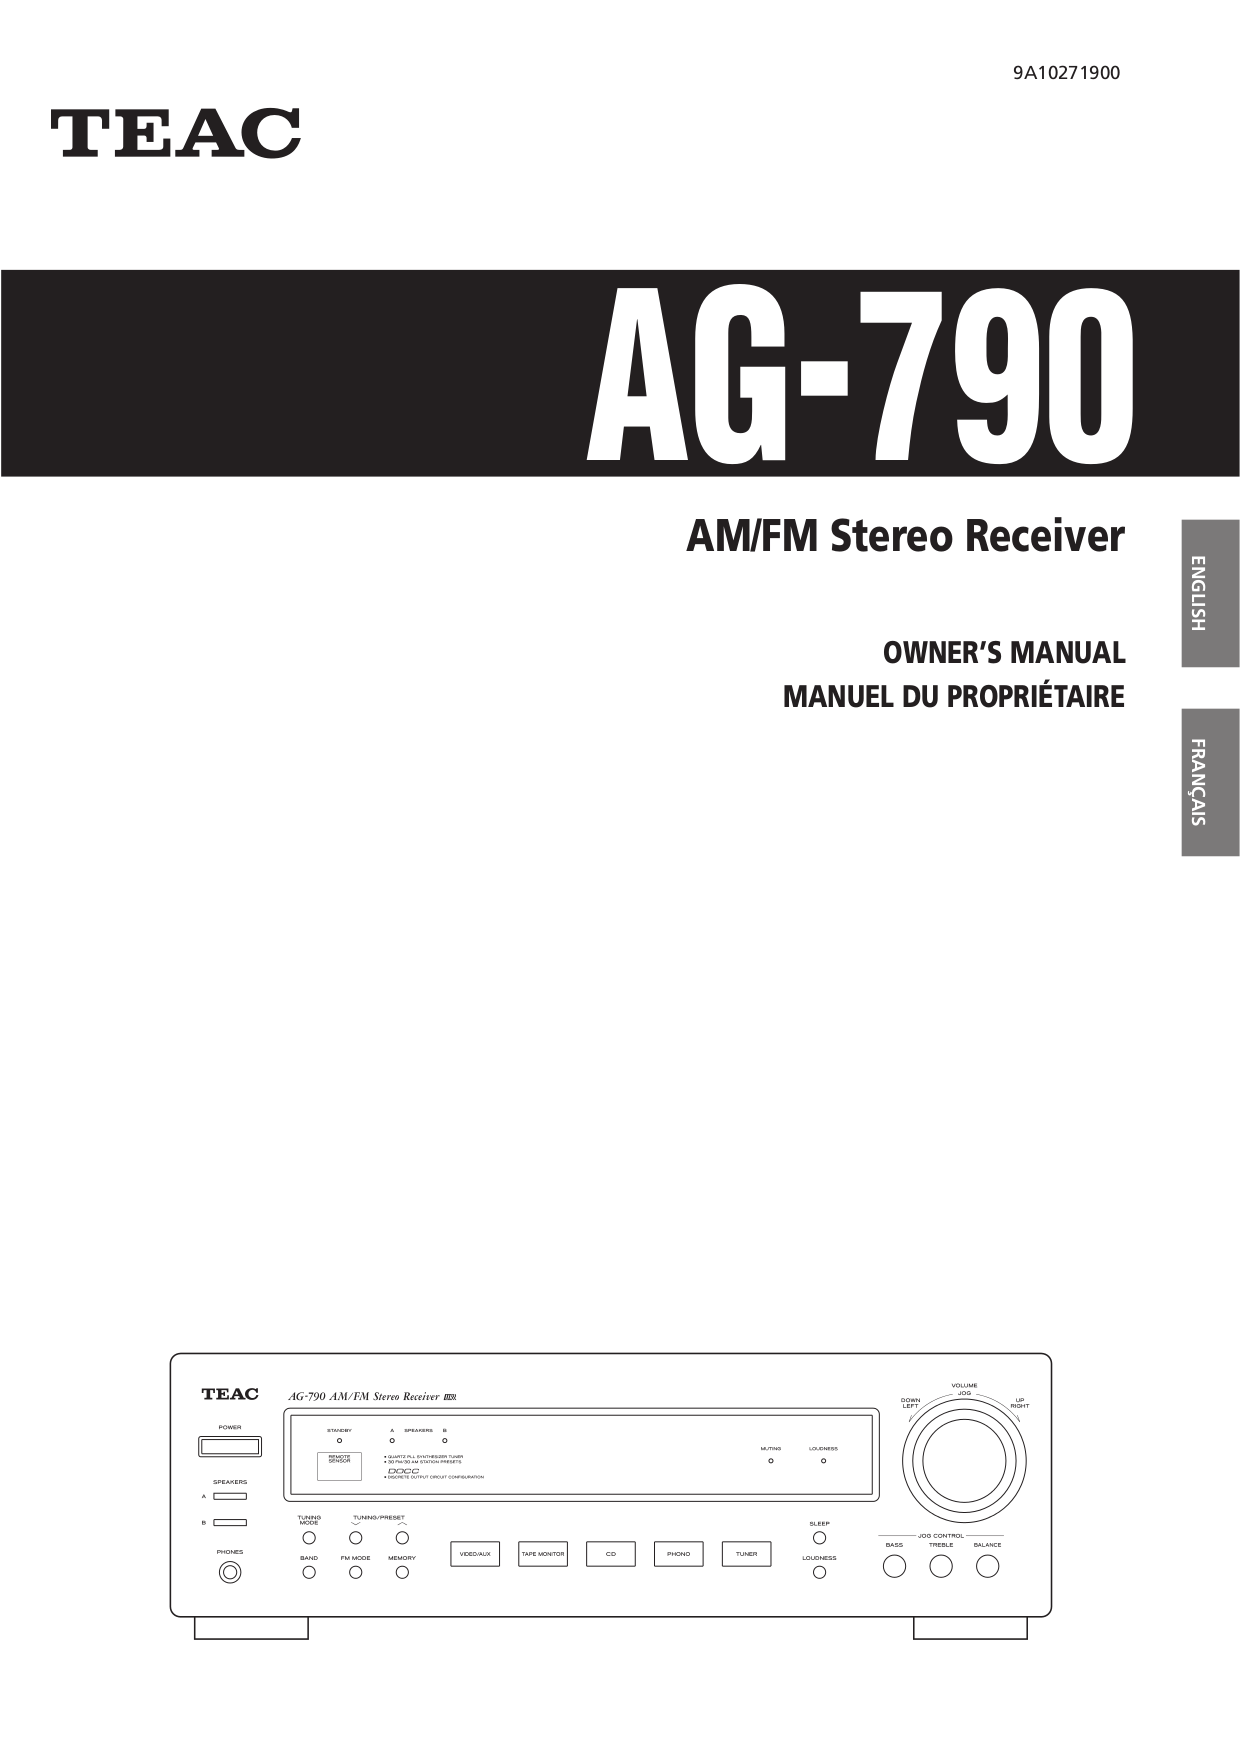 Download free pdf for Teac AG-790 Receiver manual